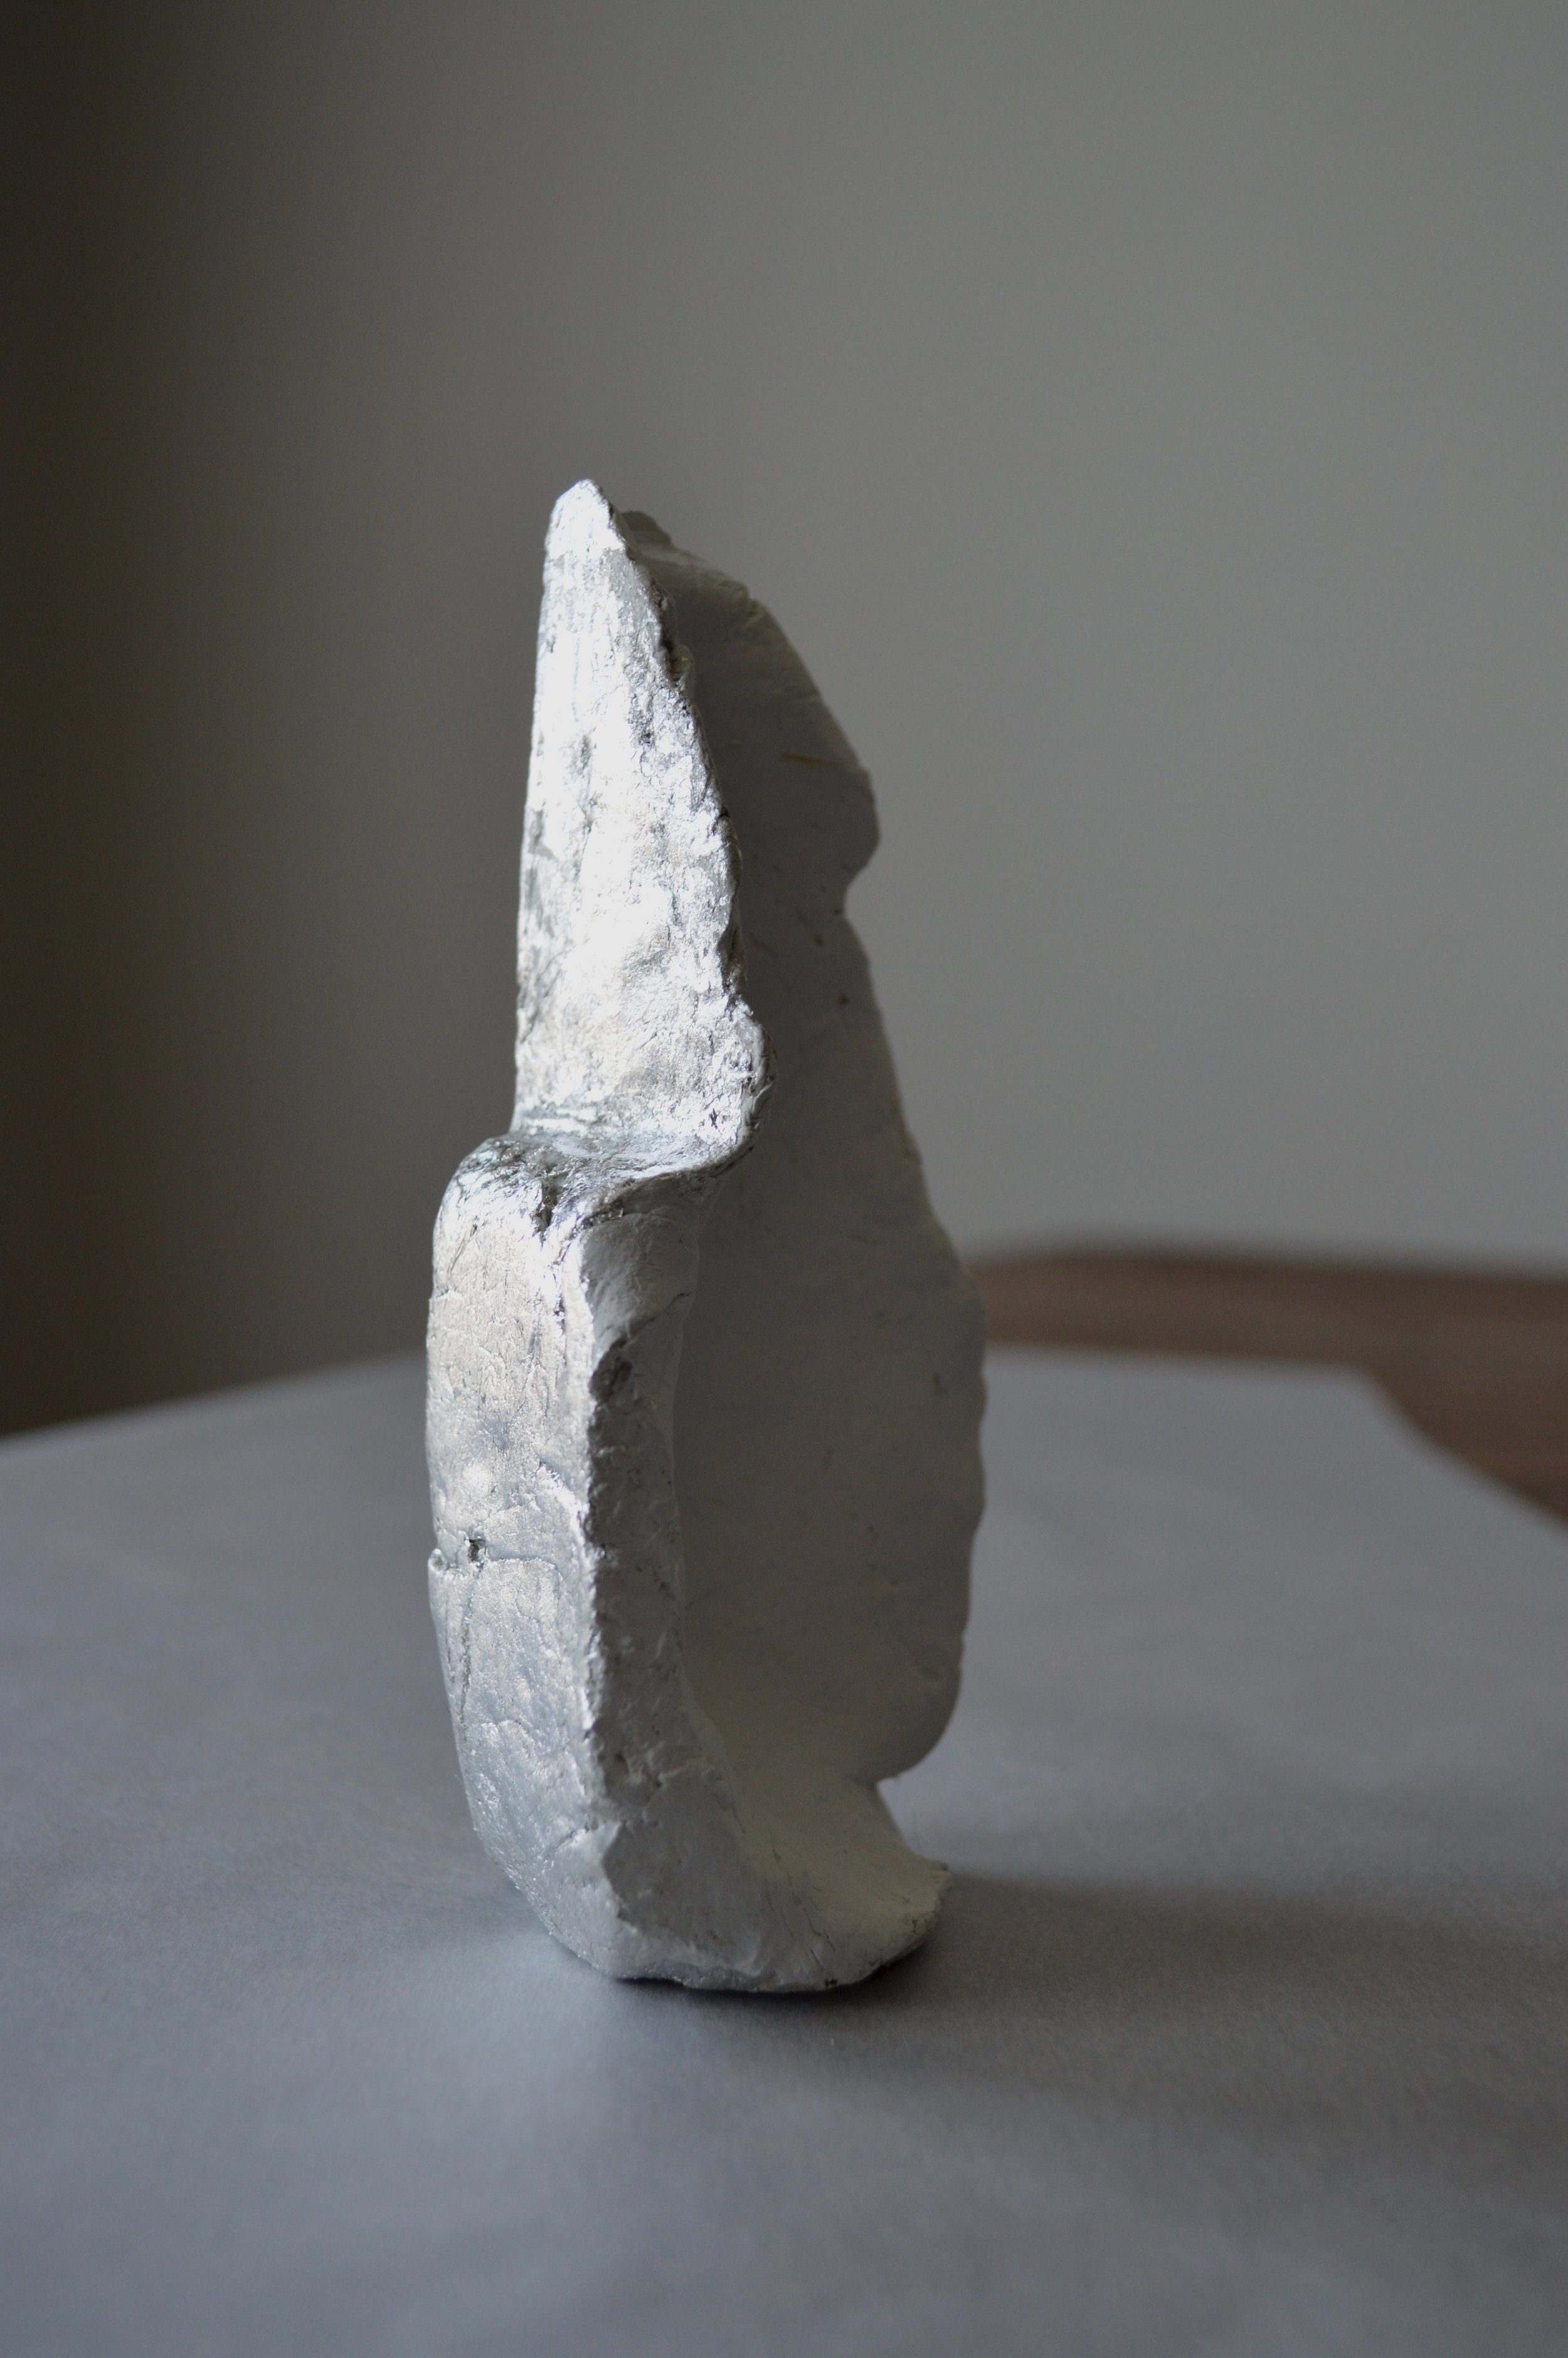 """Untitled, (corner AG).   site: anterior gallery. material: air dry clay, silver leaf, gesso, matte medium. 5.5"""" x 3"""" x 2.5"""", May 2019"""